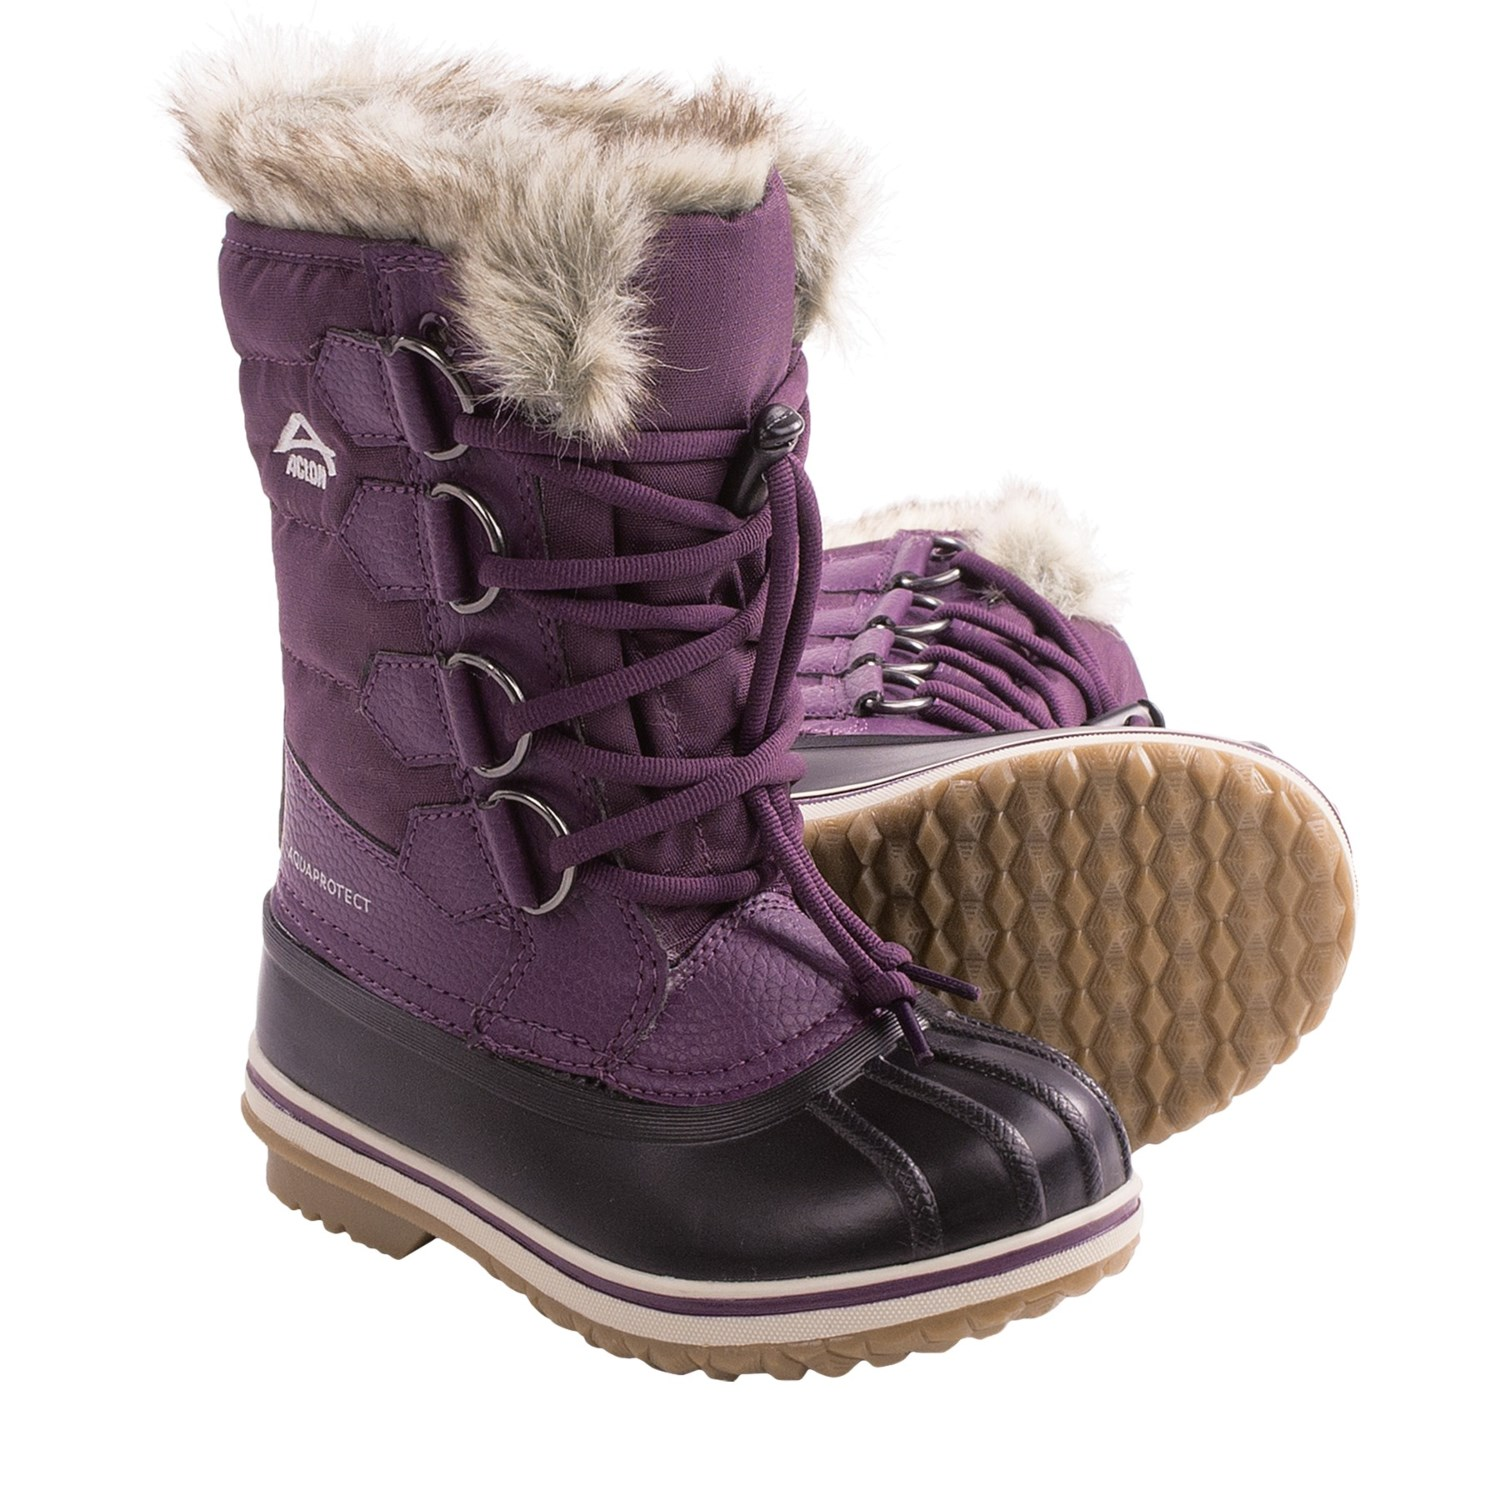 Acton Cortina Winter Boots - Waterproof (For Kids) - Save 35%